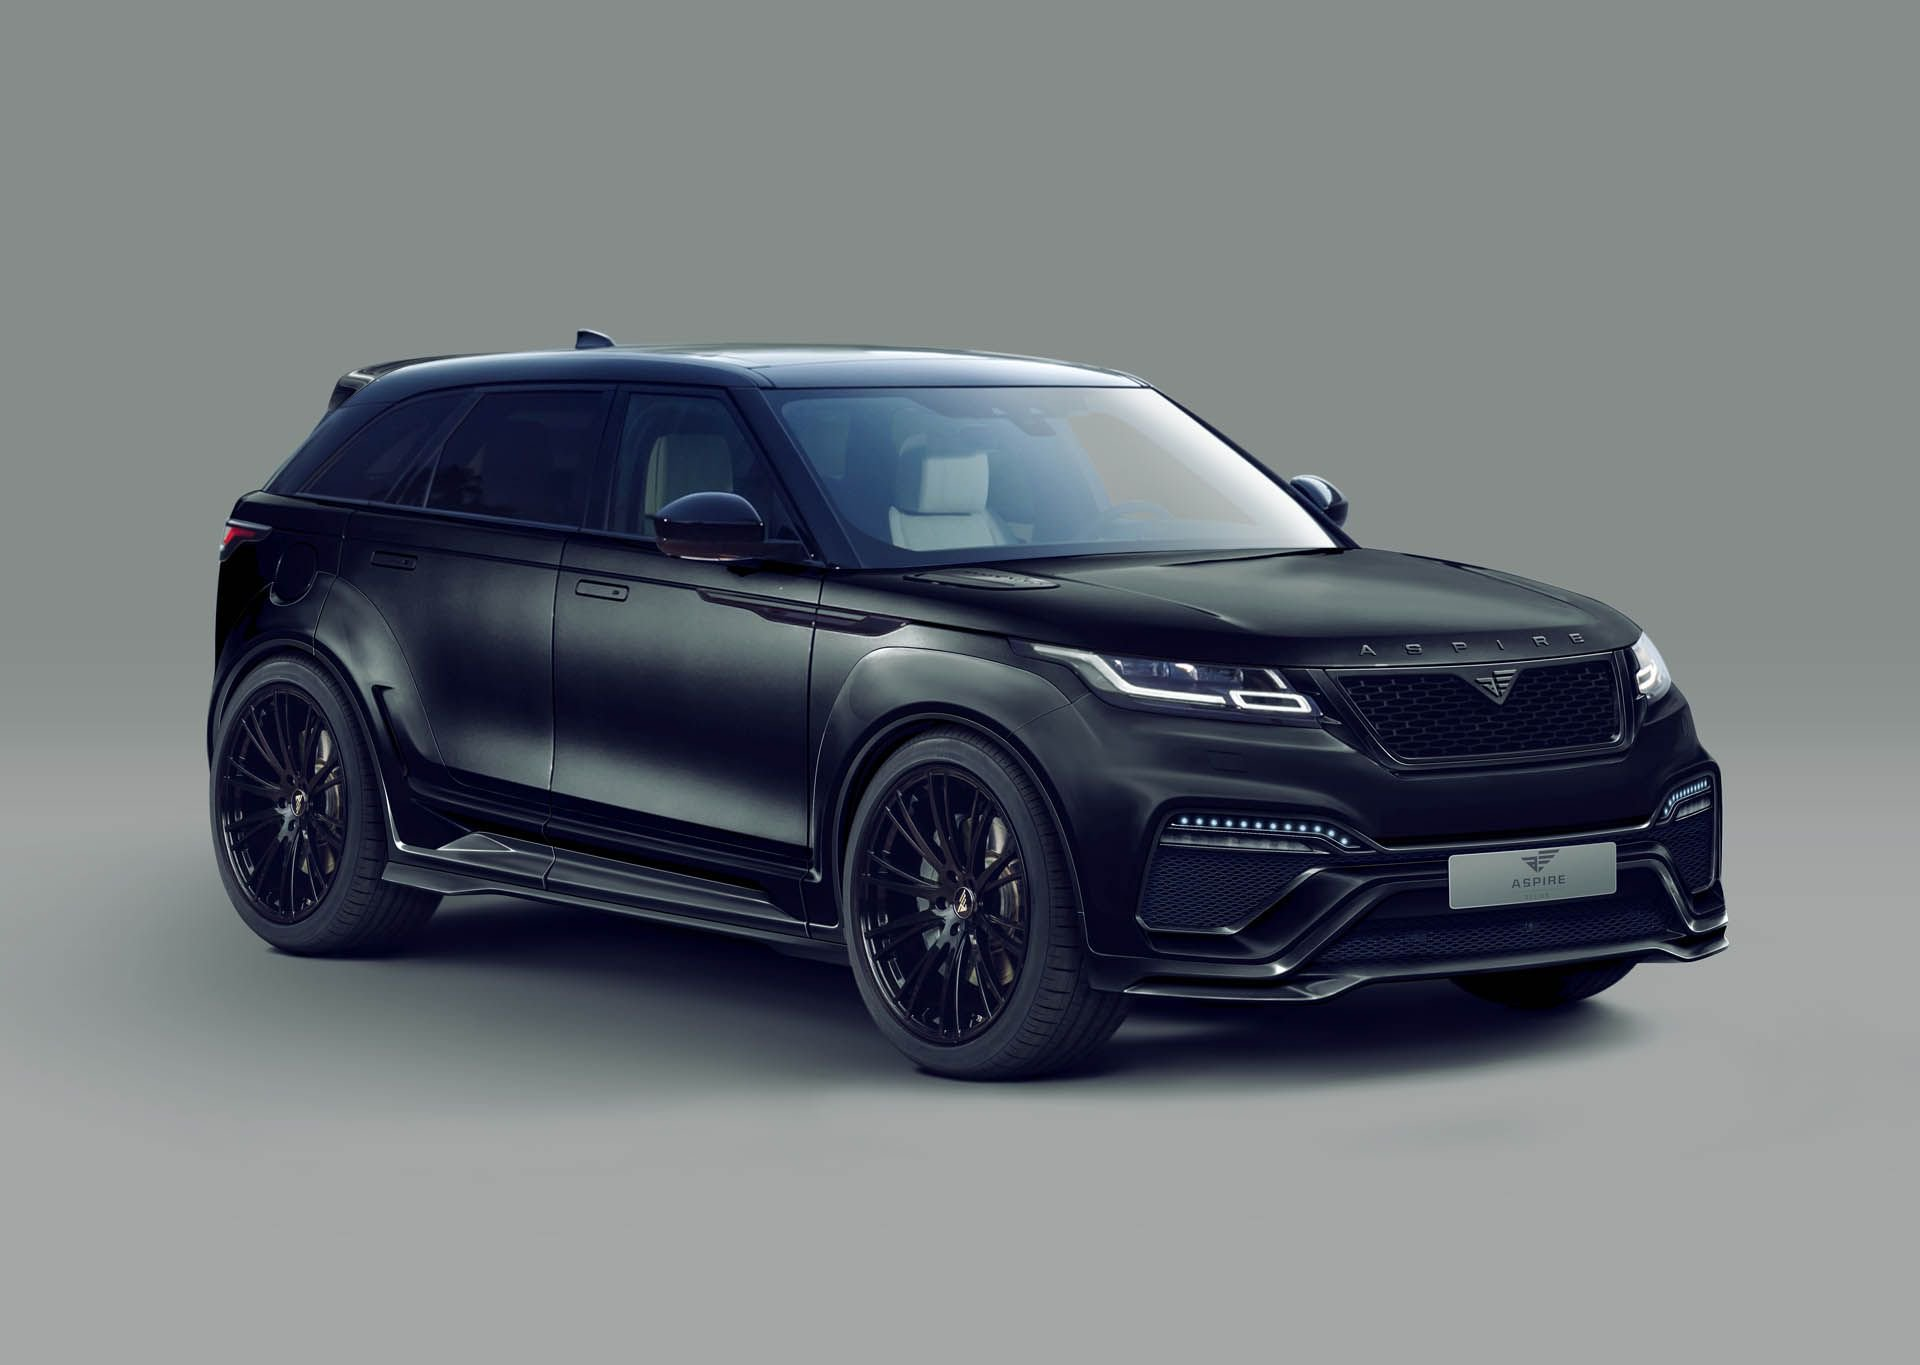 Range Rover Velar by Aspire Design (14)